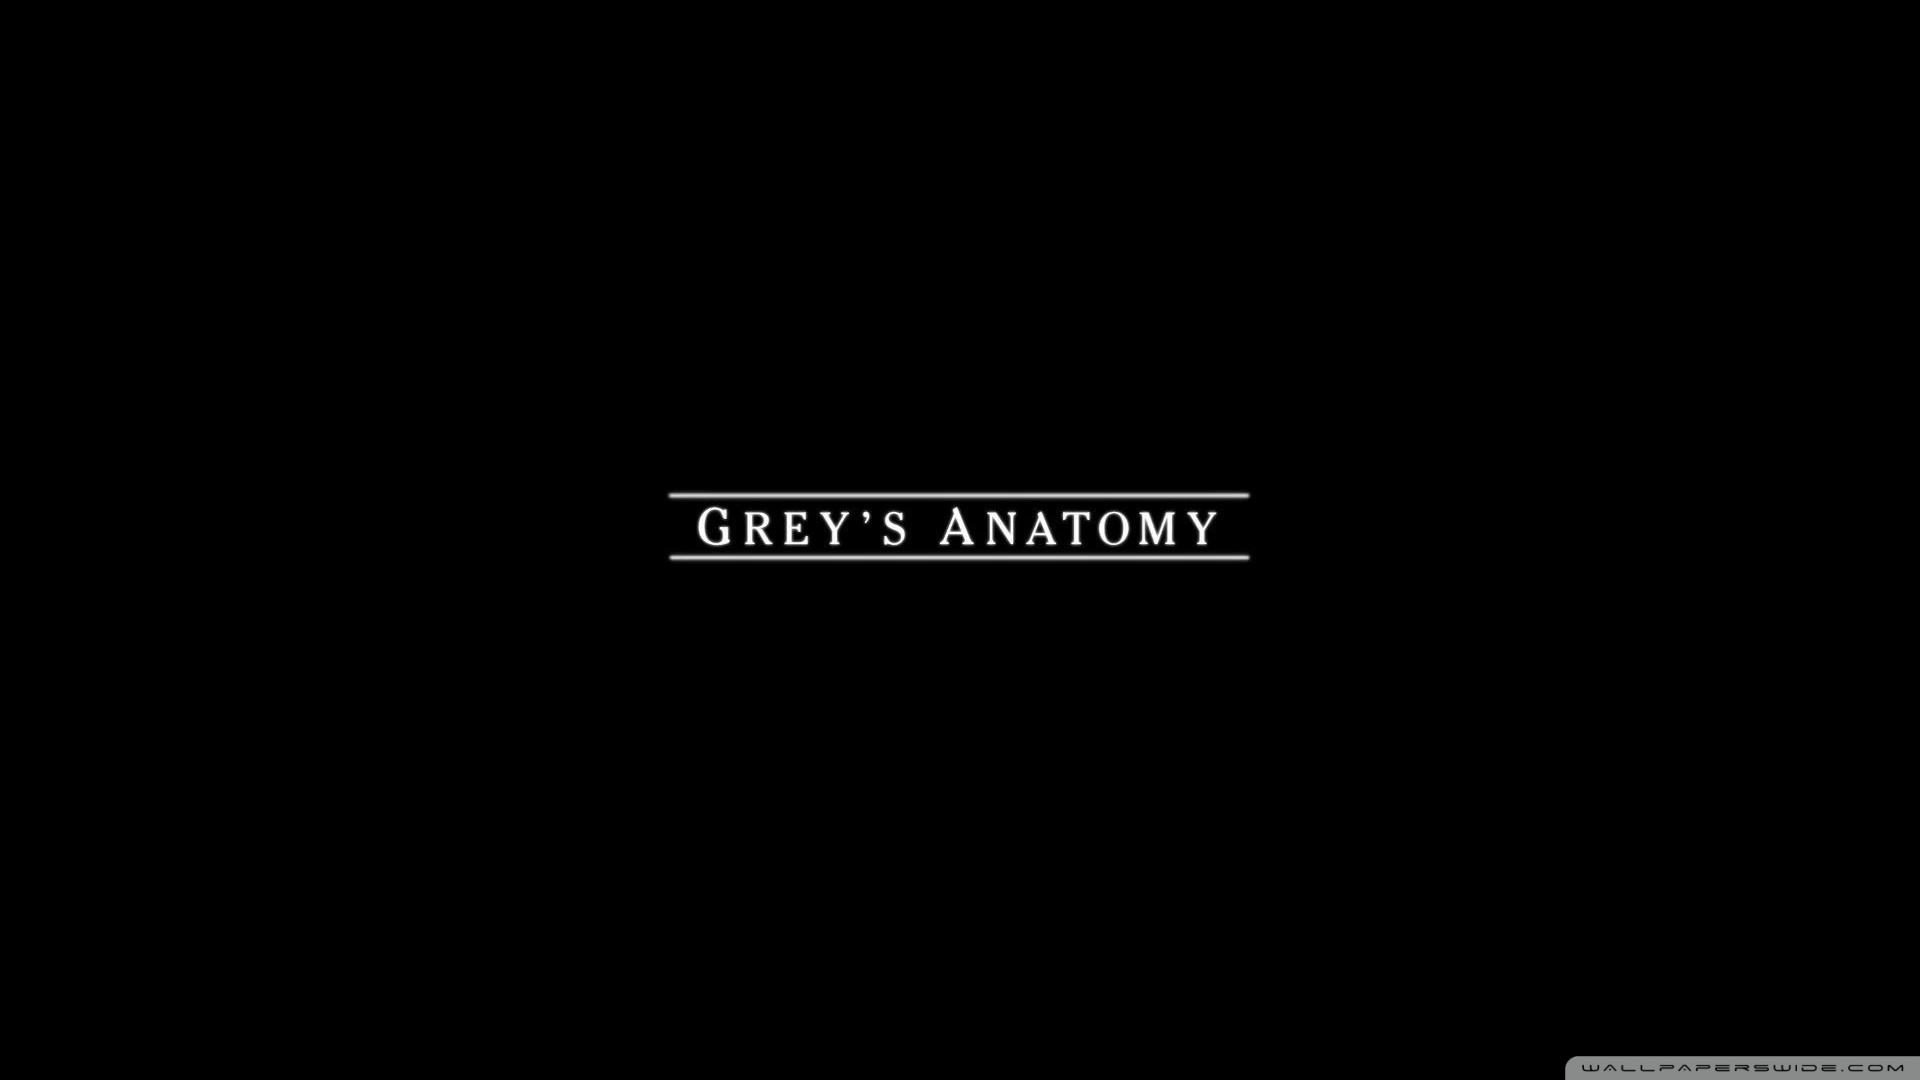 Greys Anatomy 4K HD Desktop Wallpaper for 4K Ultra HD TV 1920x1080